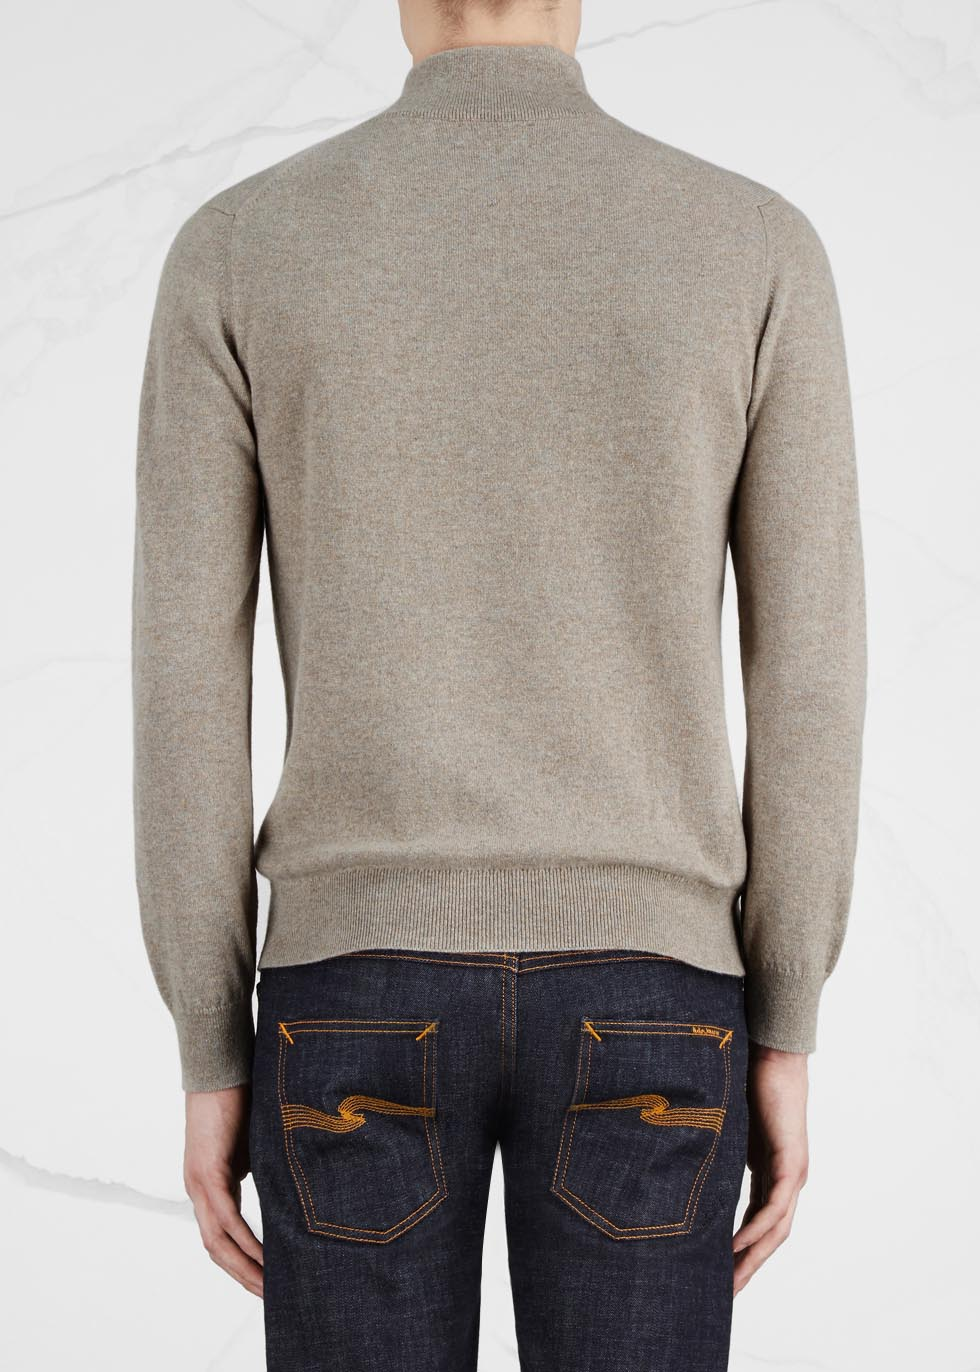 Stone cashmere jumper - Johnstons of Elgin